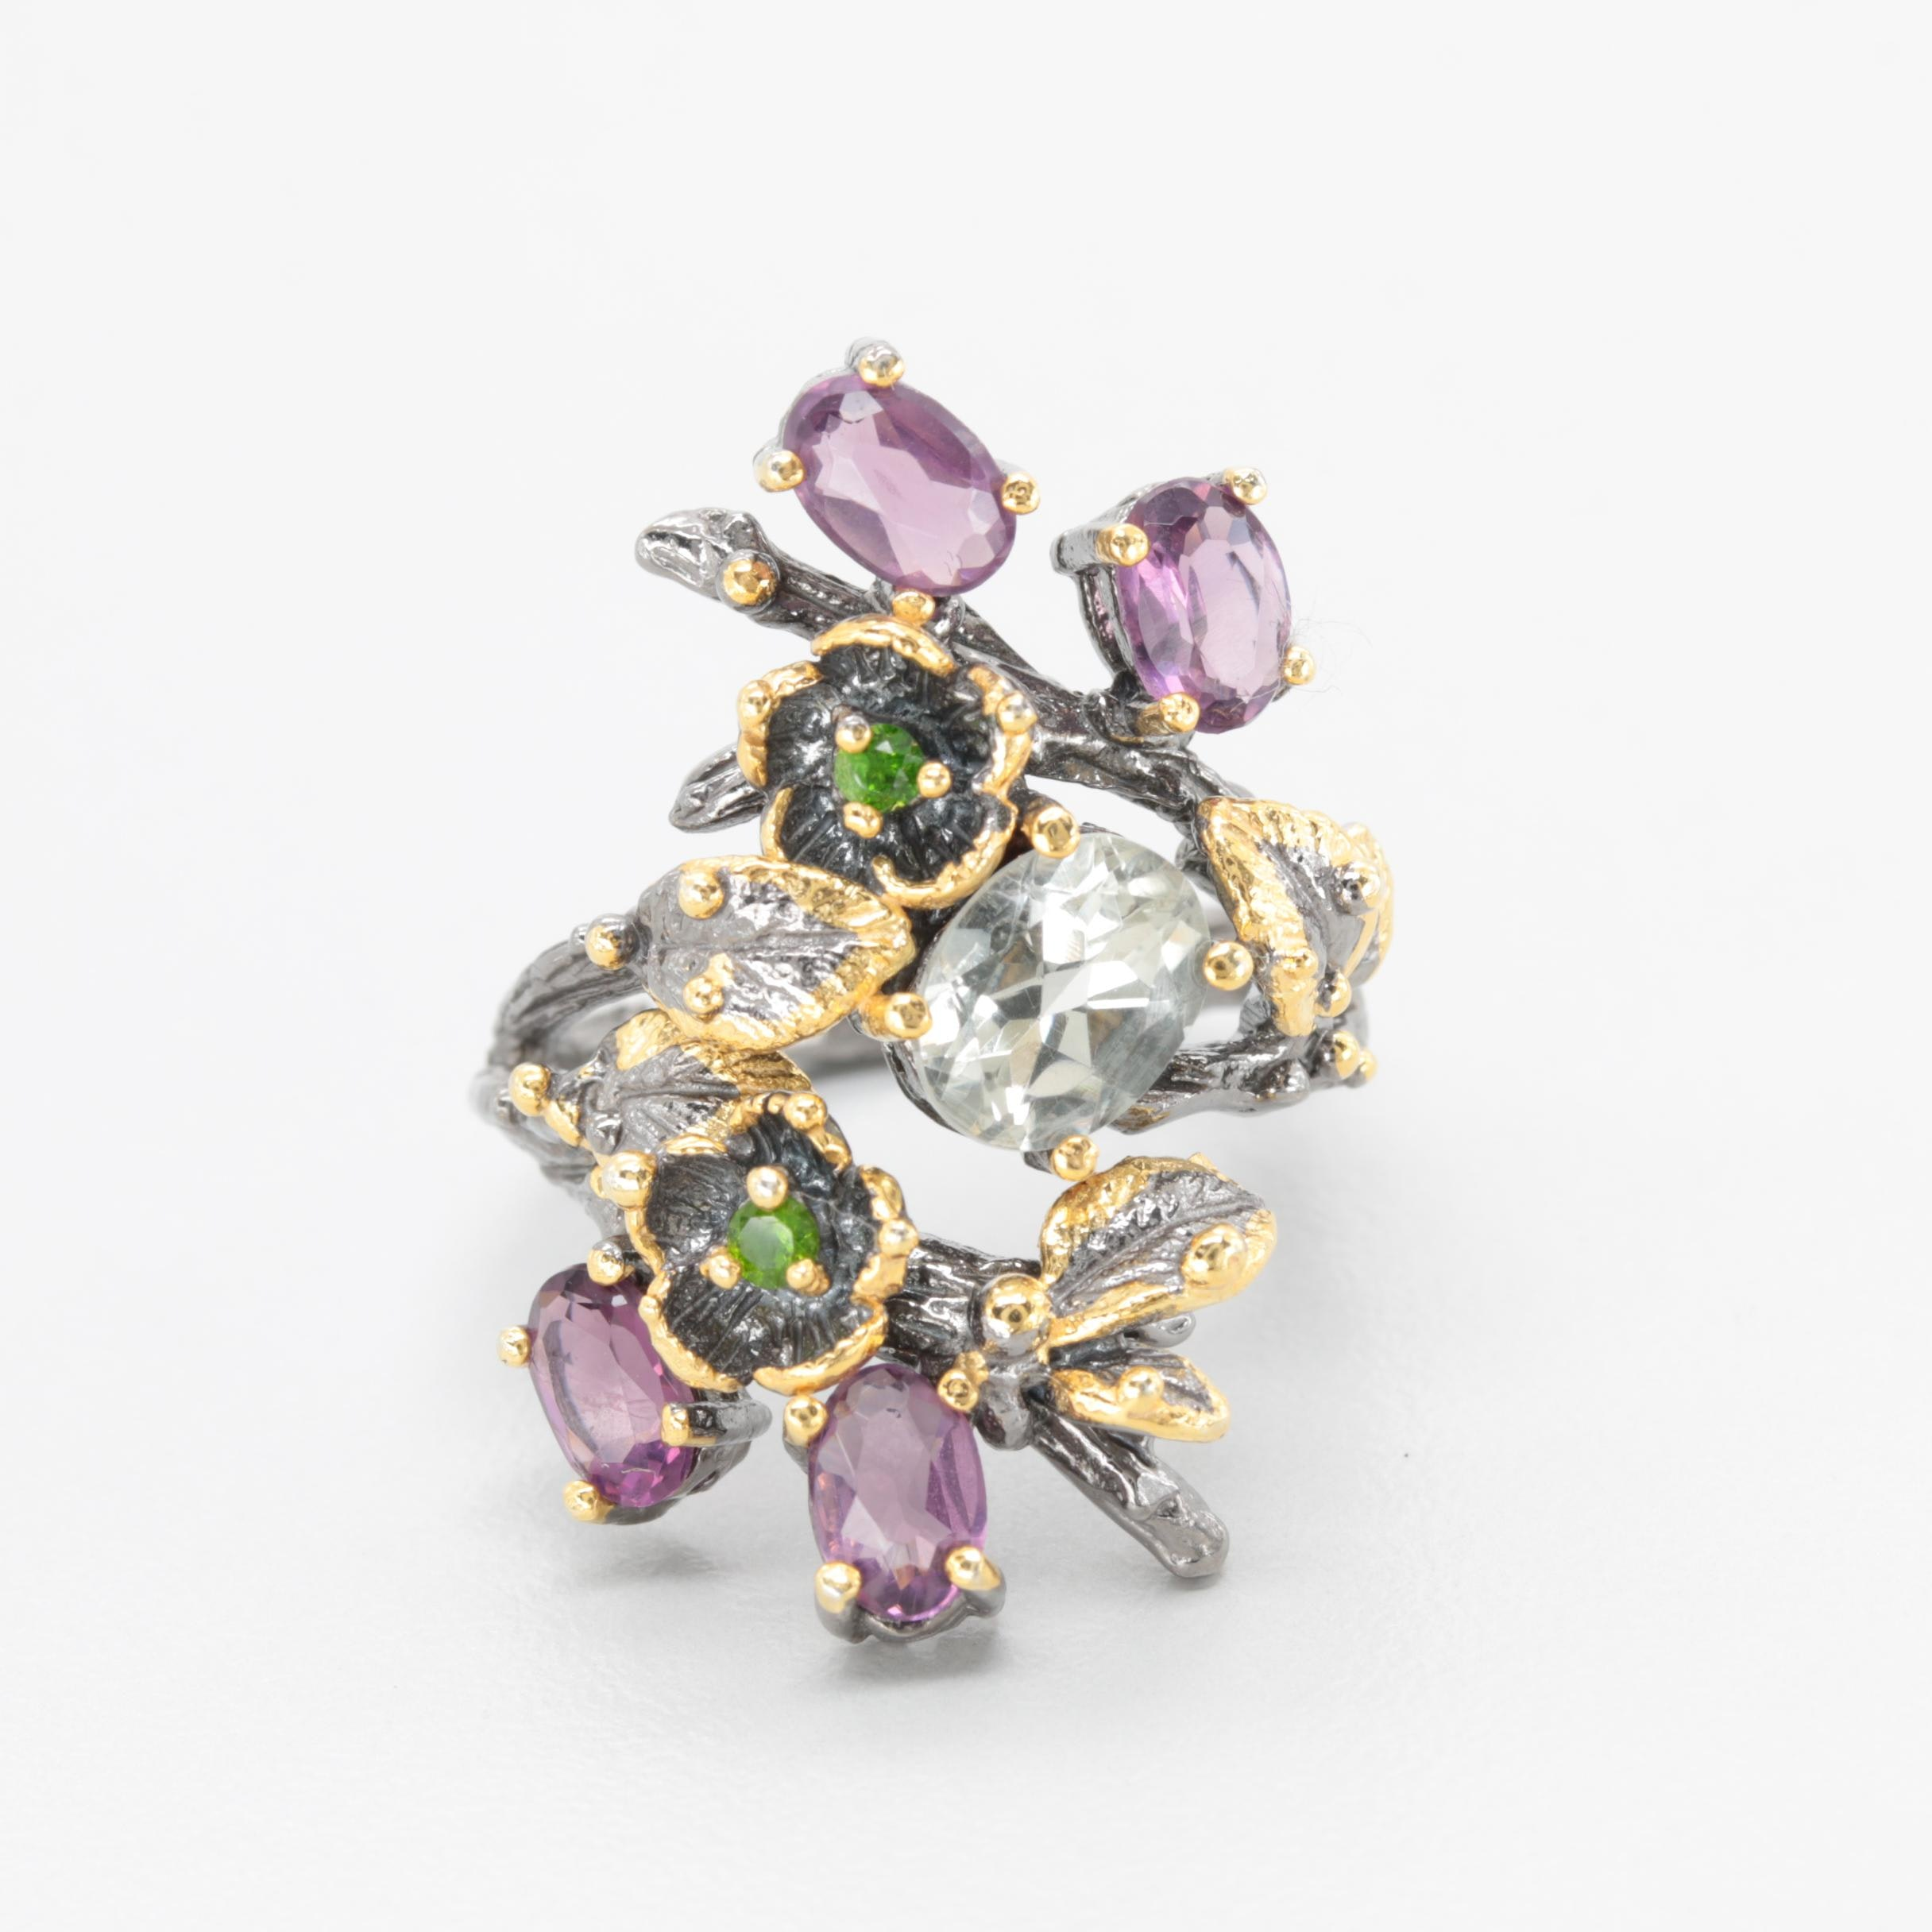 Sterling Silver Aquamarine, Amethyst, and Diopside Foliate Ring with Gold Wash